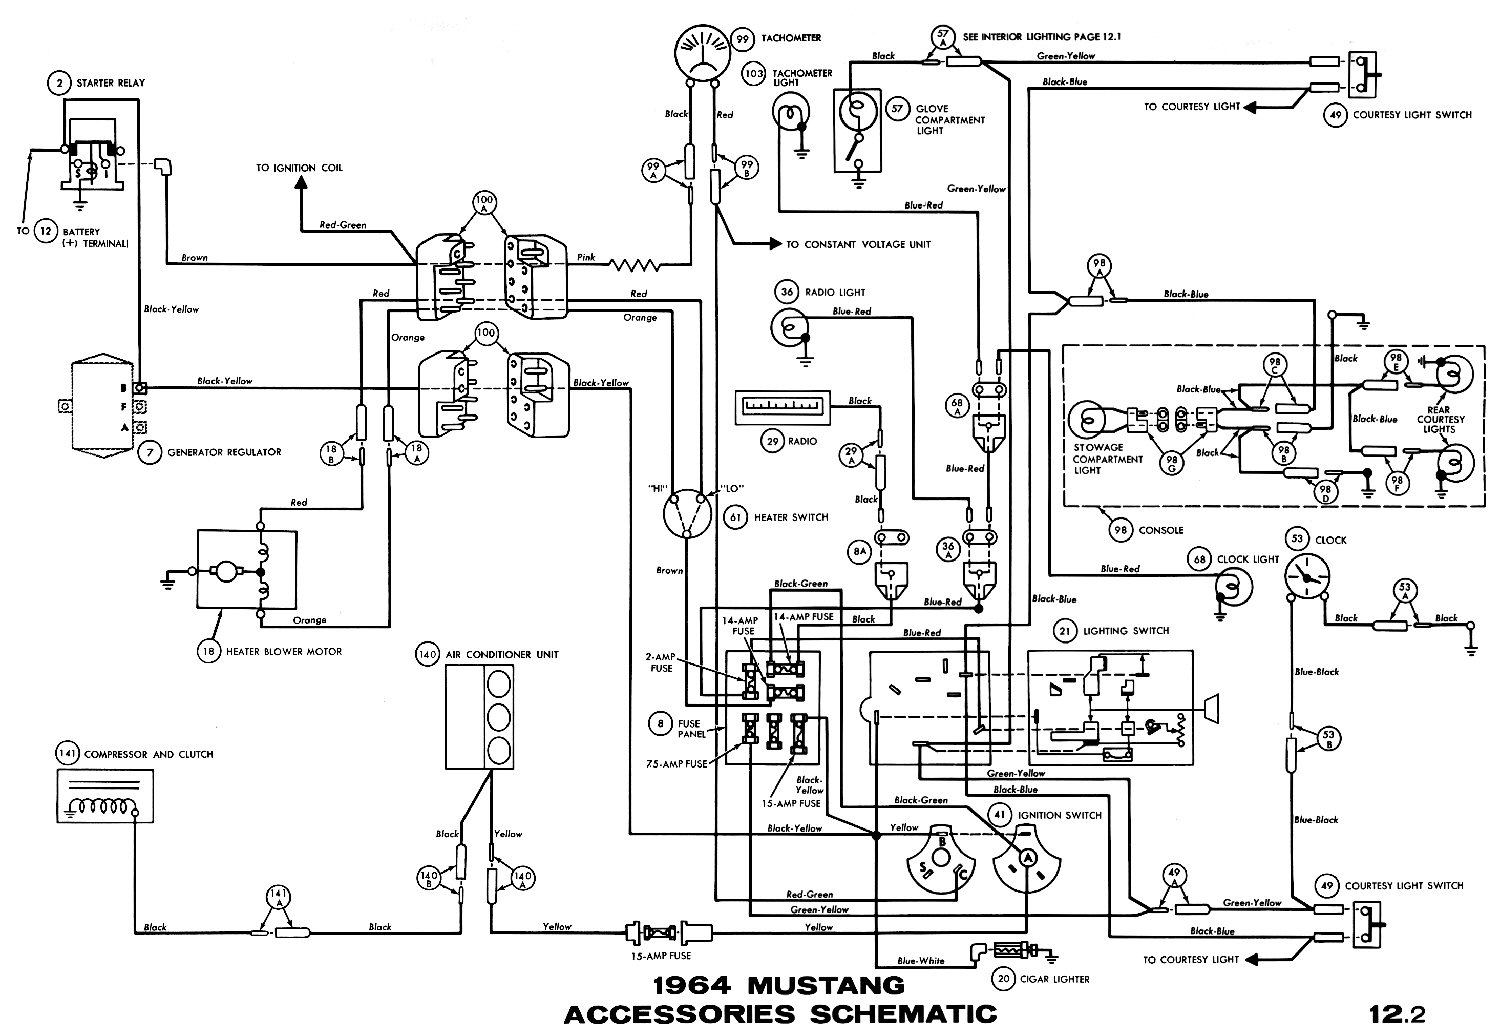 1969 mustang wiring diagram   27 wiring diagram images